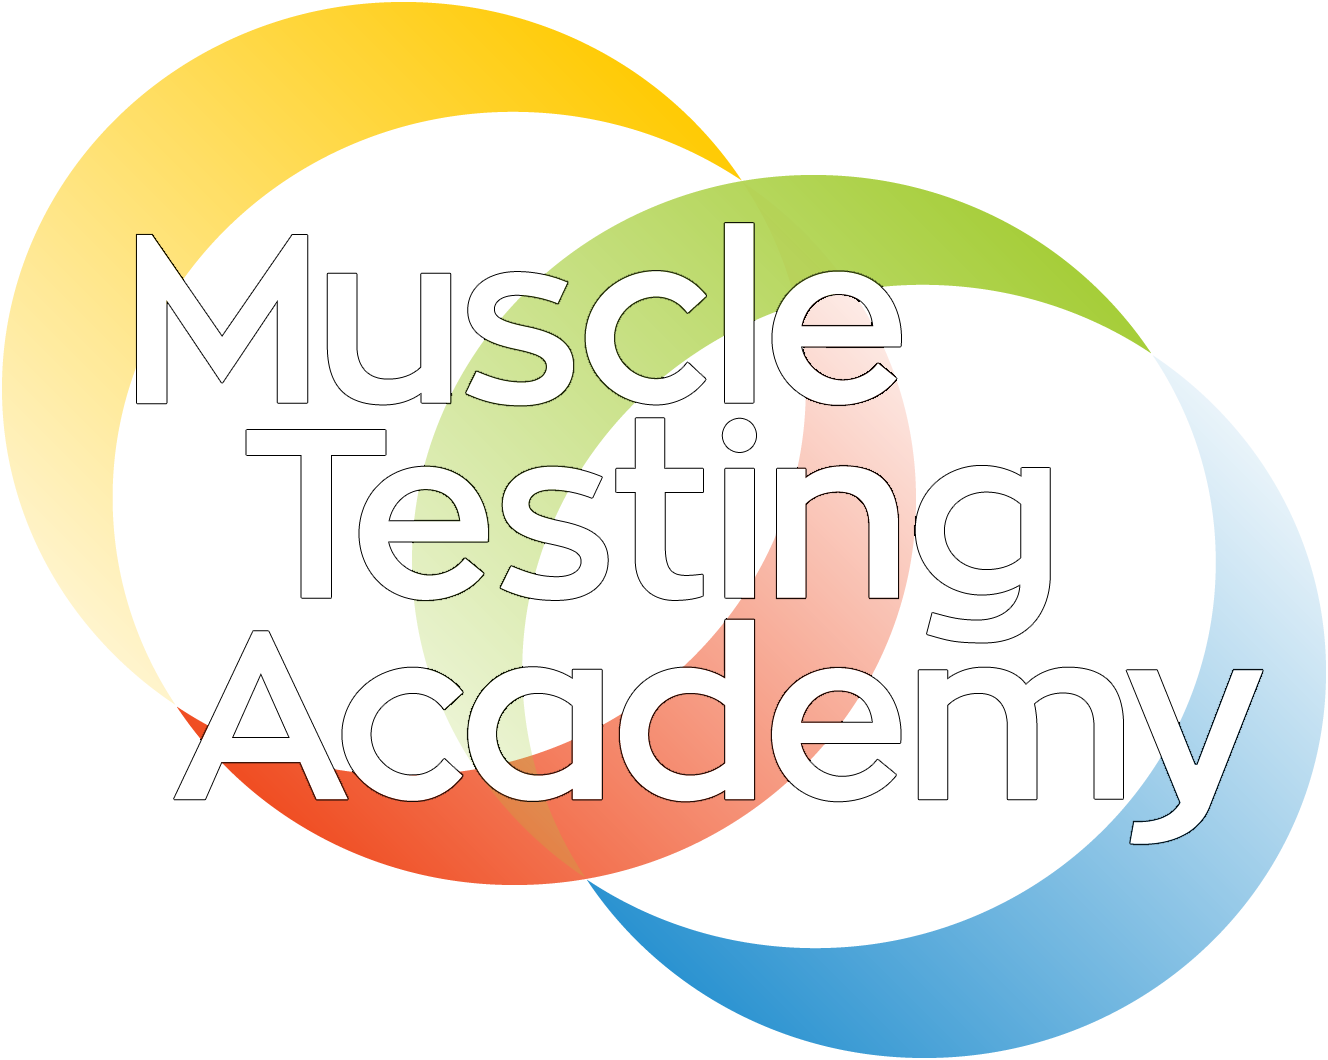 Muscle testing academy personal. Conflict clipart contention